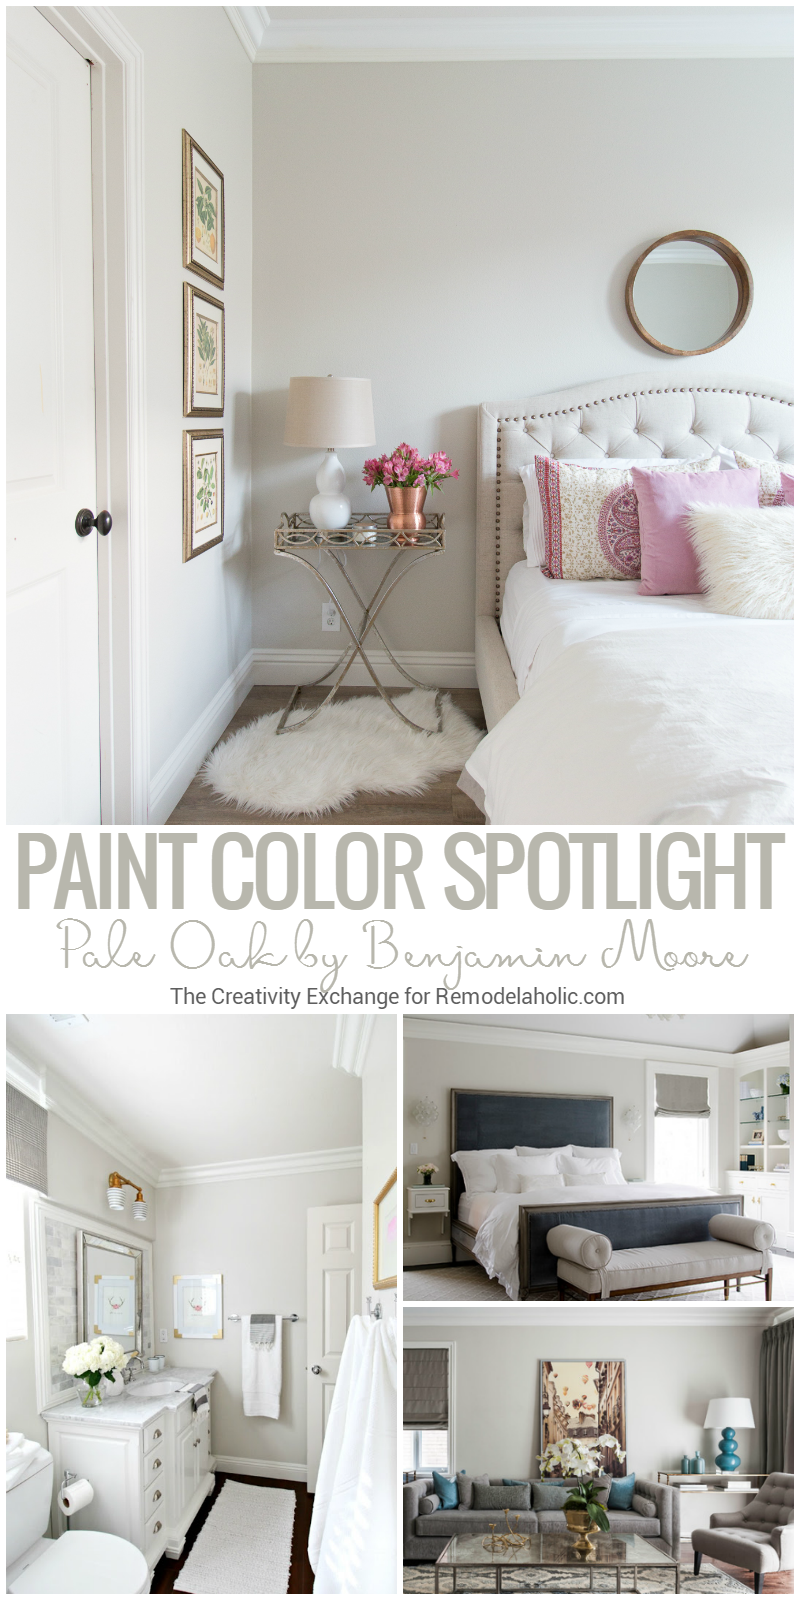 Albert Blog: Color Spotlight: Benjamin Moore Pale Oak